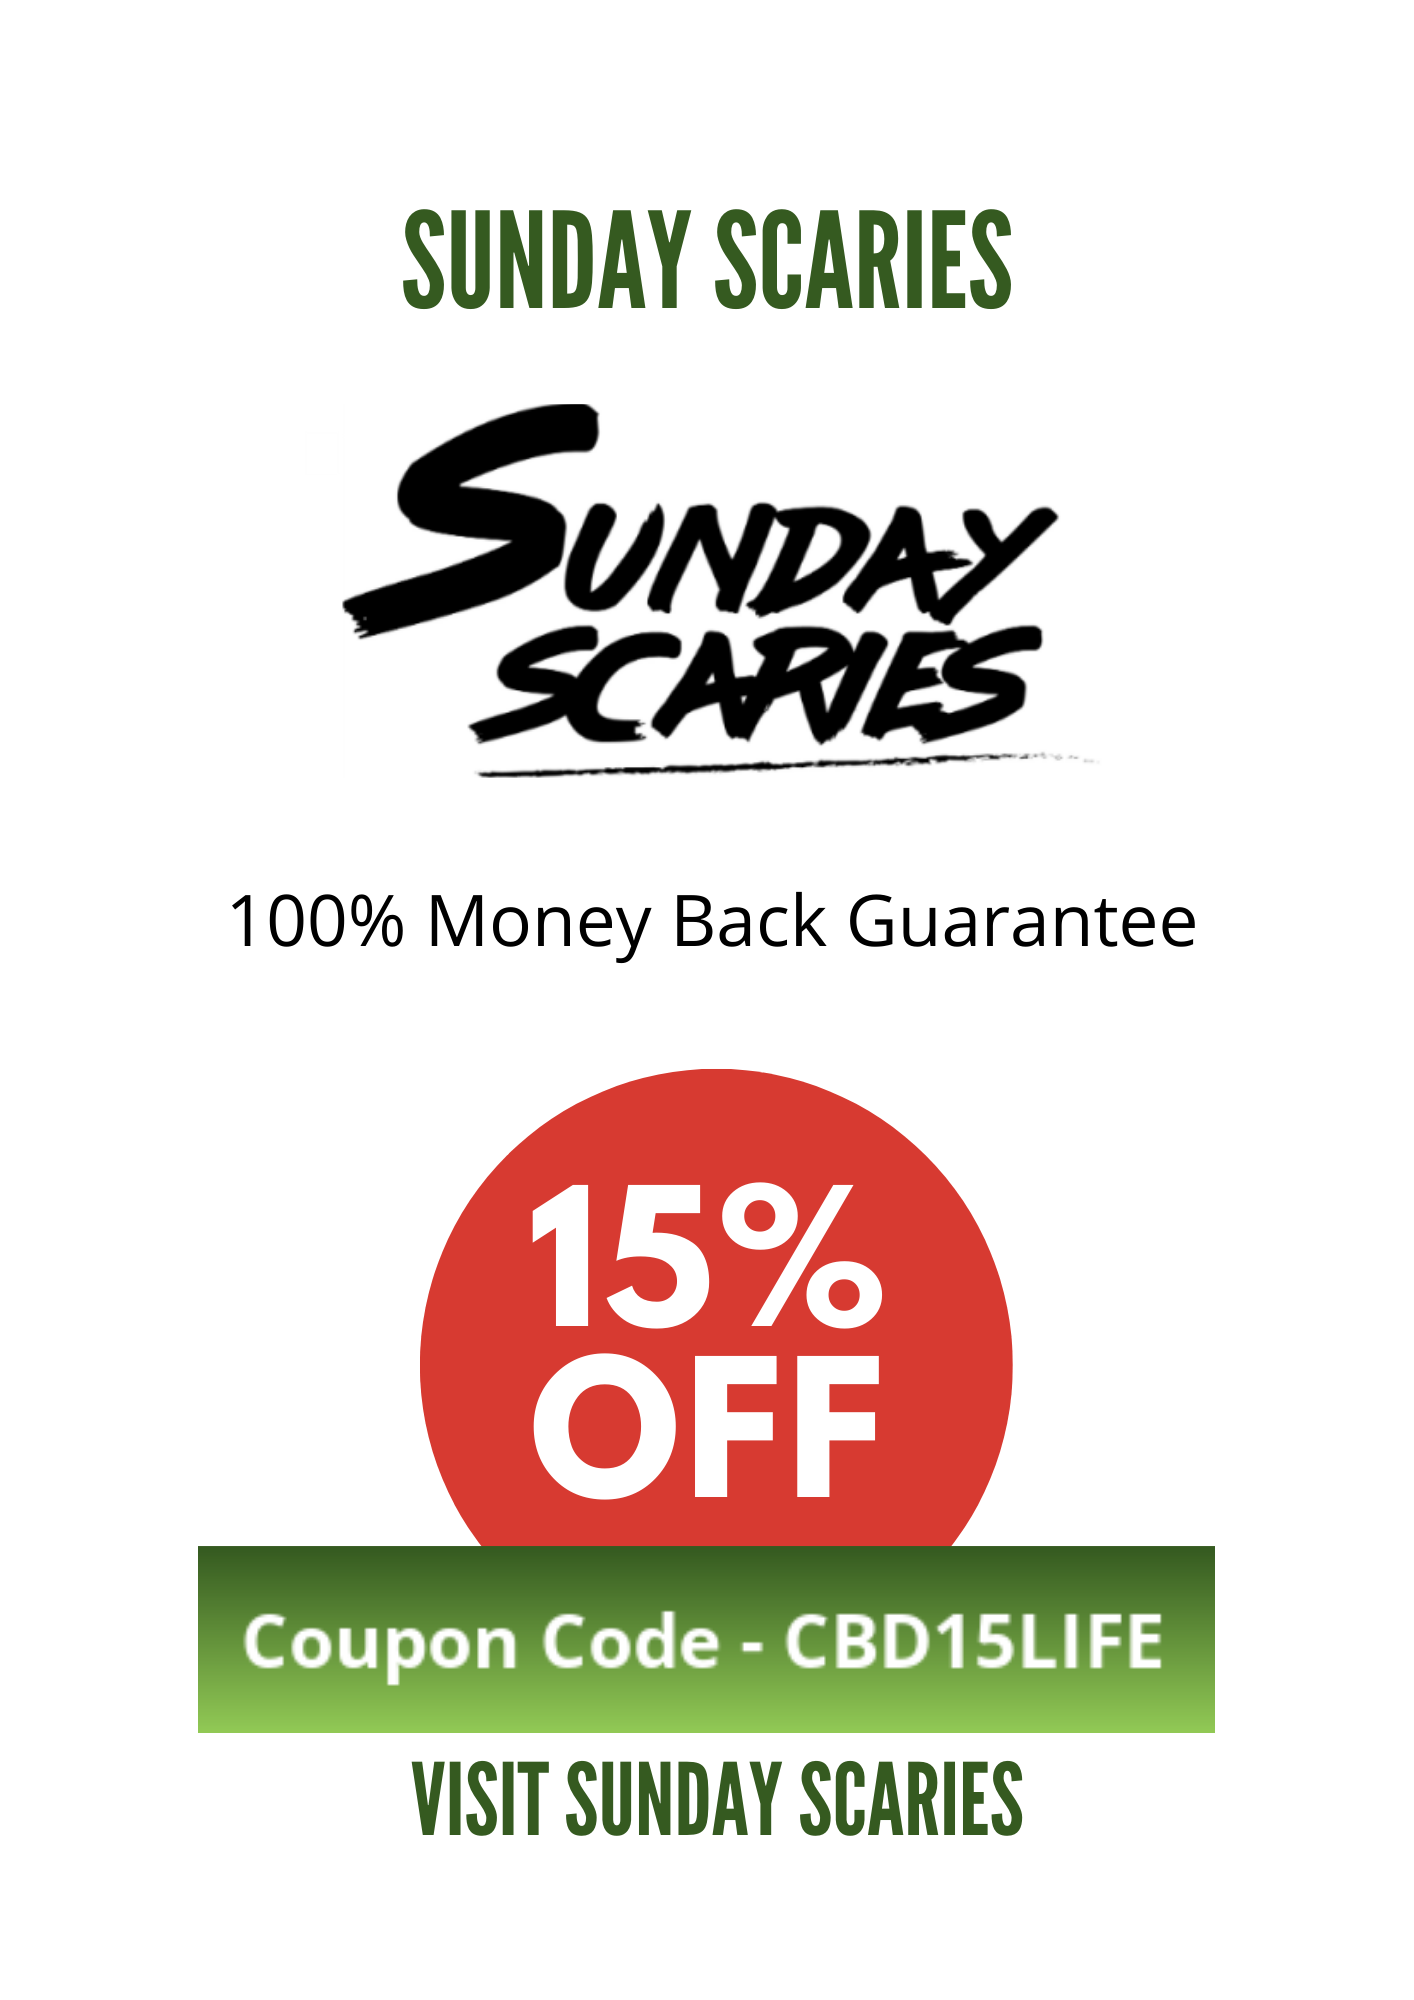 SUNDAY SCARIES COUPON